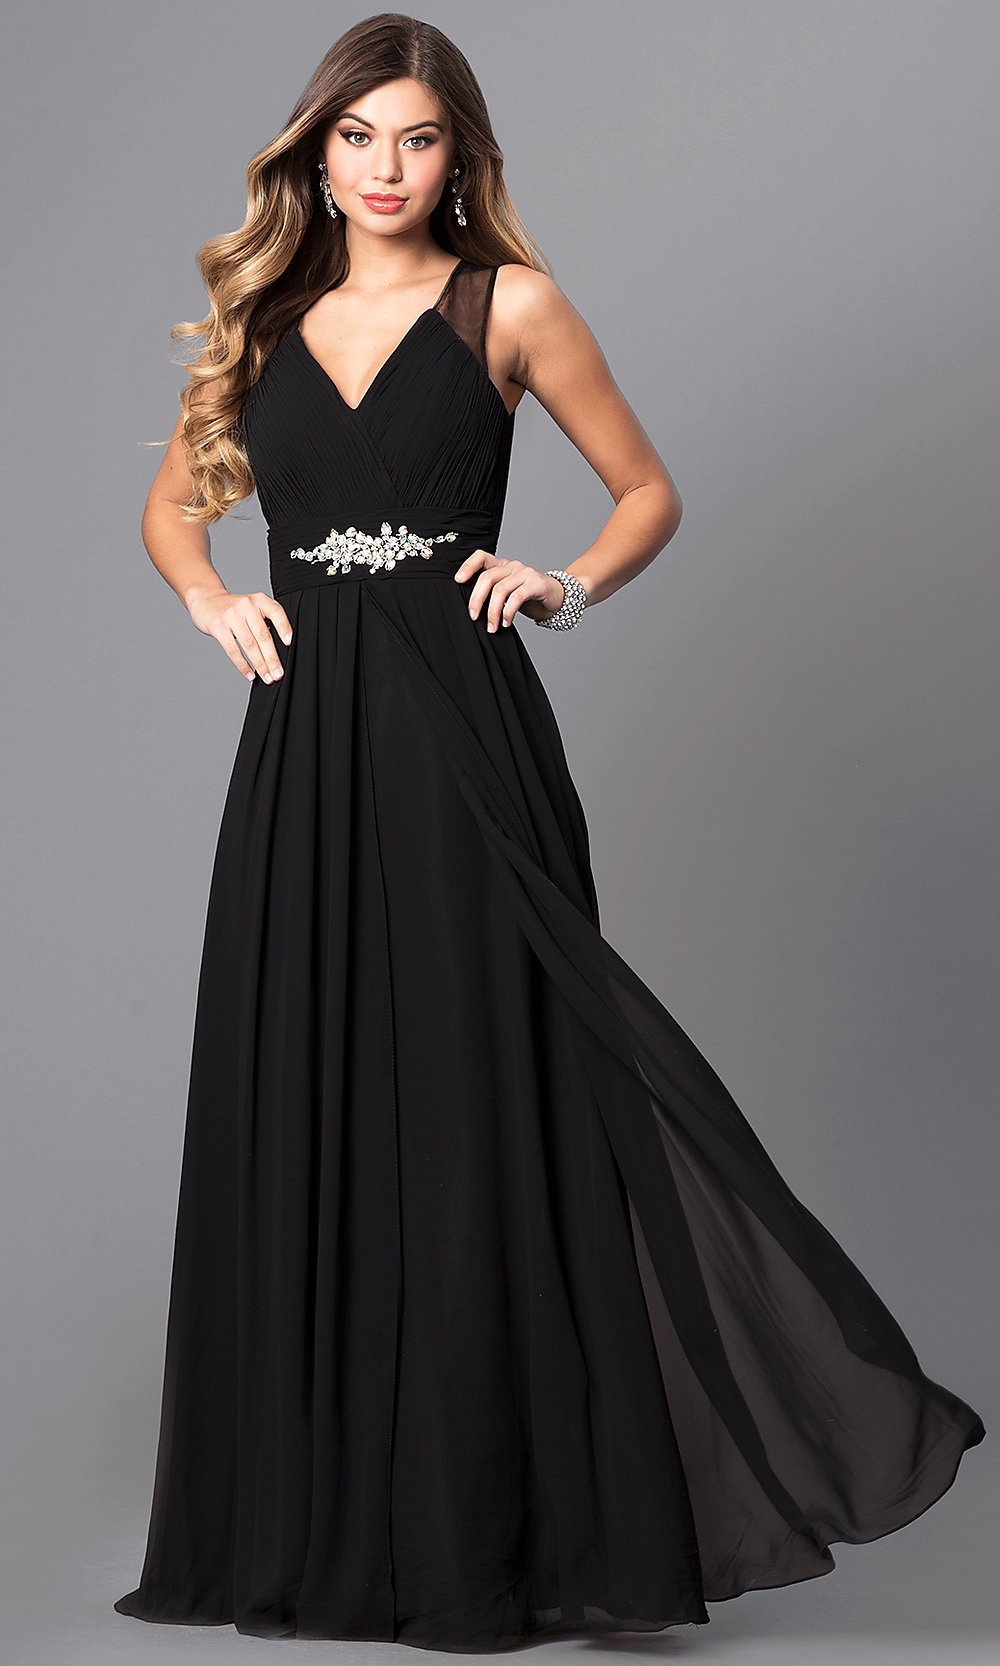 ef49c43e611 Reasonably Priced Prom Dress Stores - Data Dynamic AG